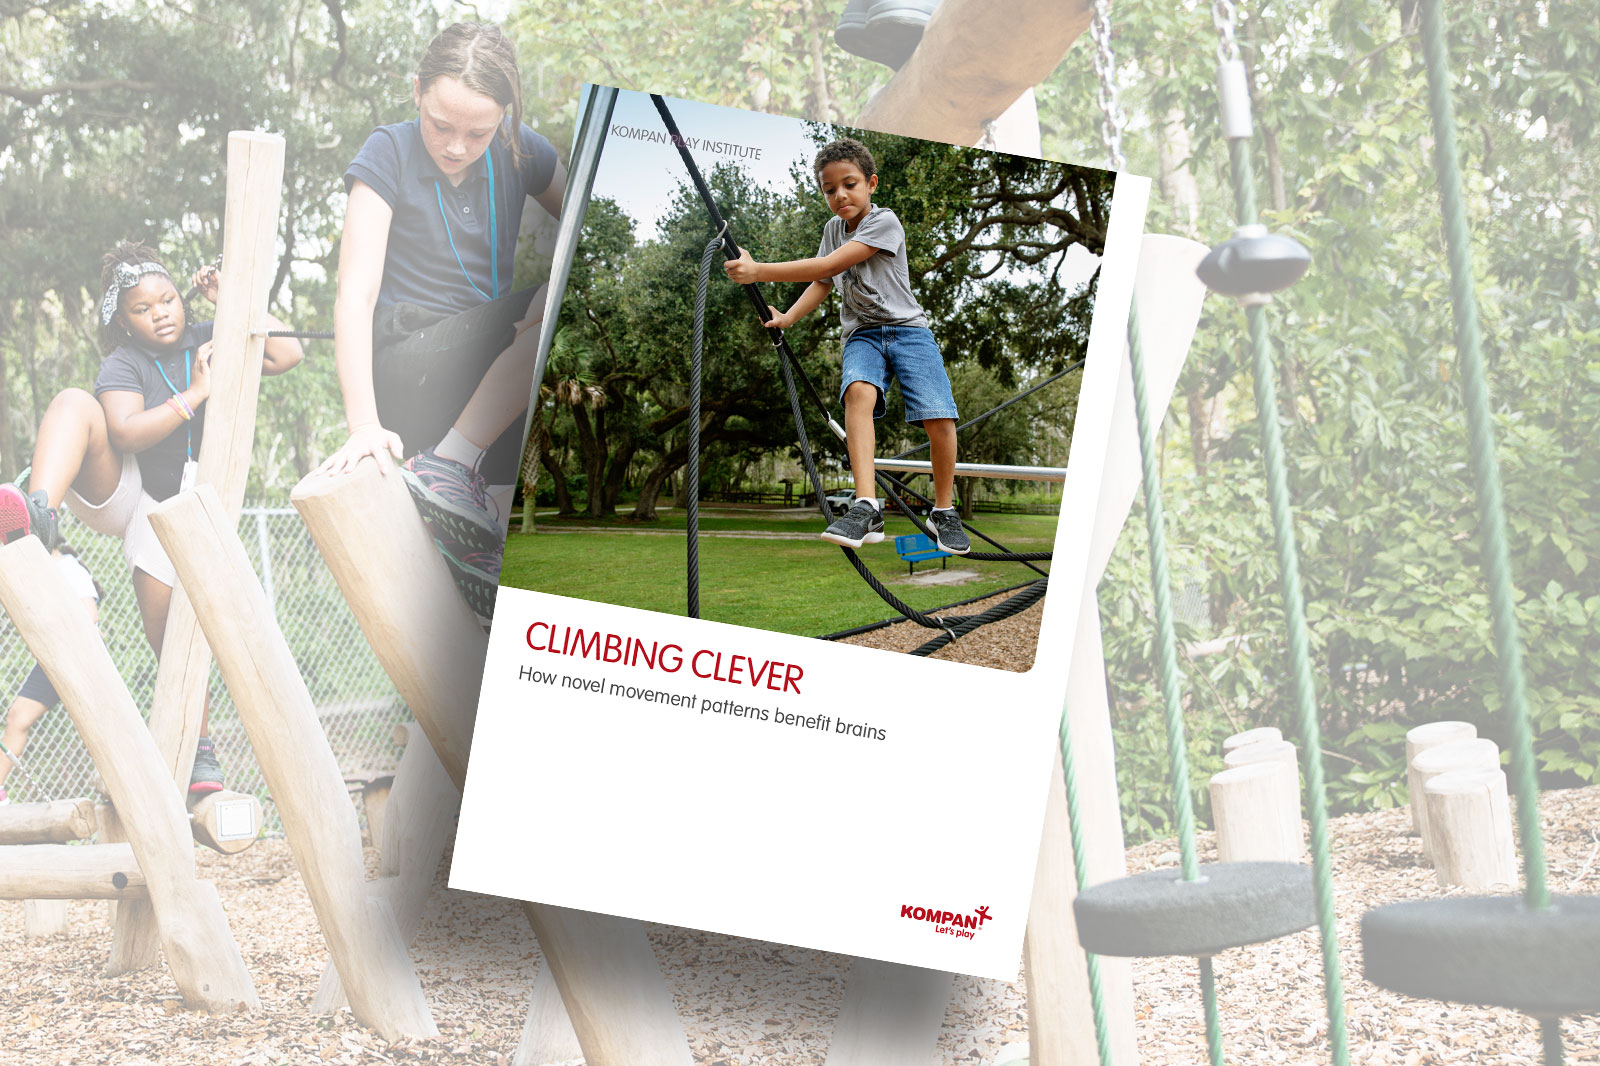 Climbing clever